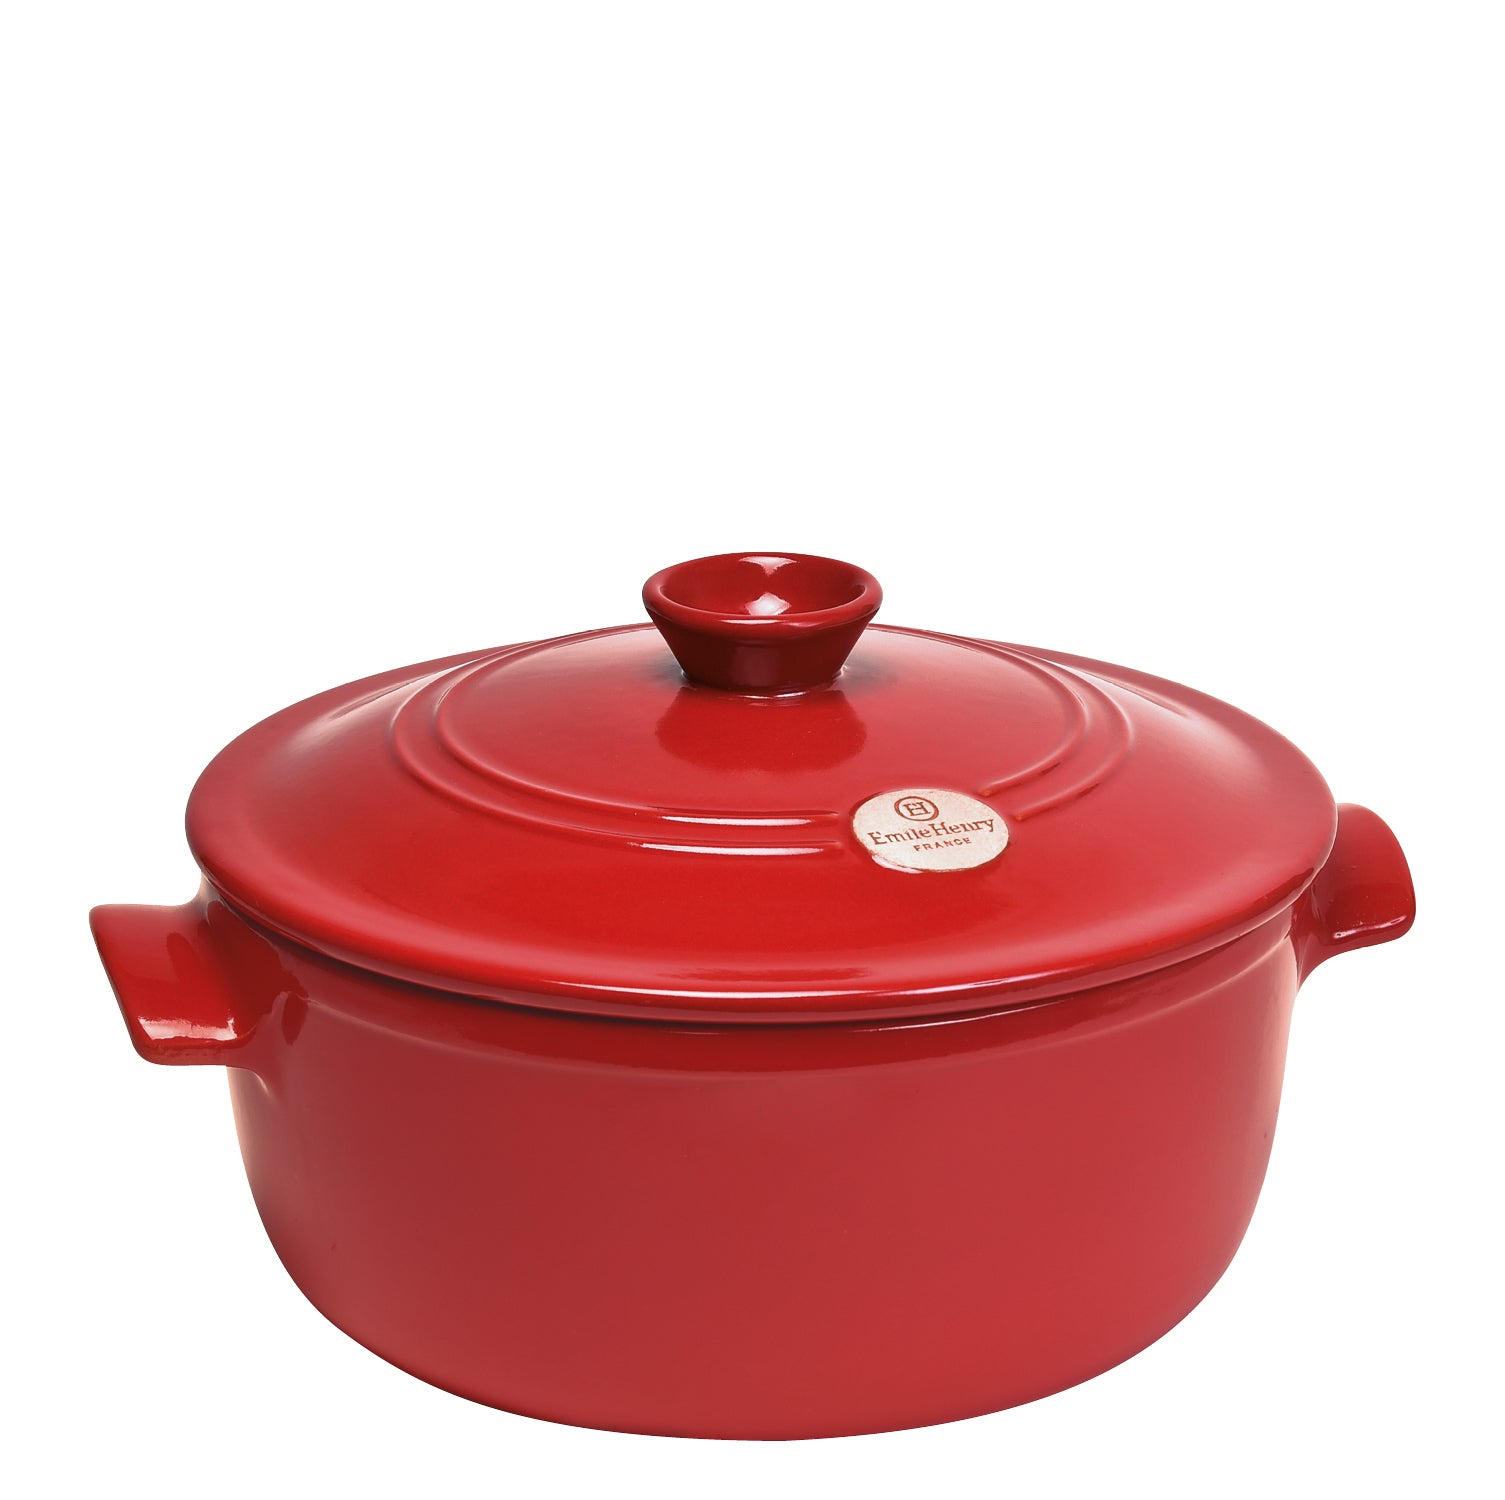 Emile Henry France Cocotte Stockpot 26cm - Red (Grand Cru)